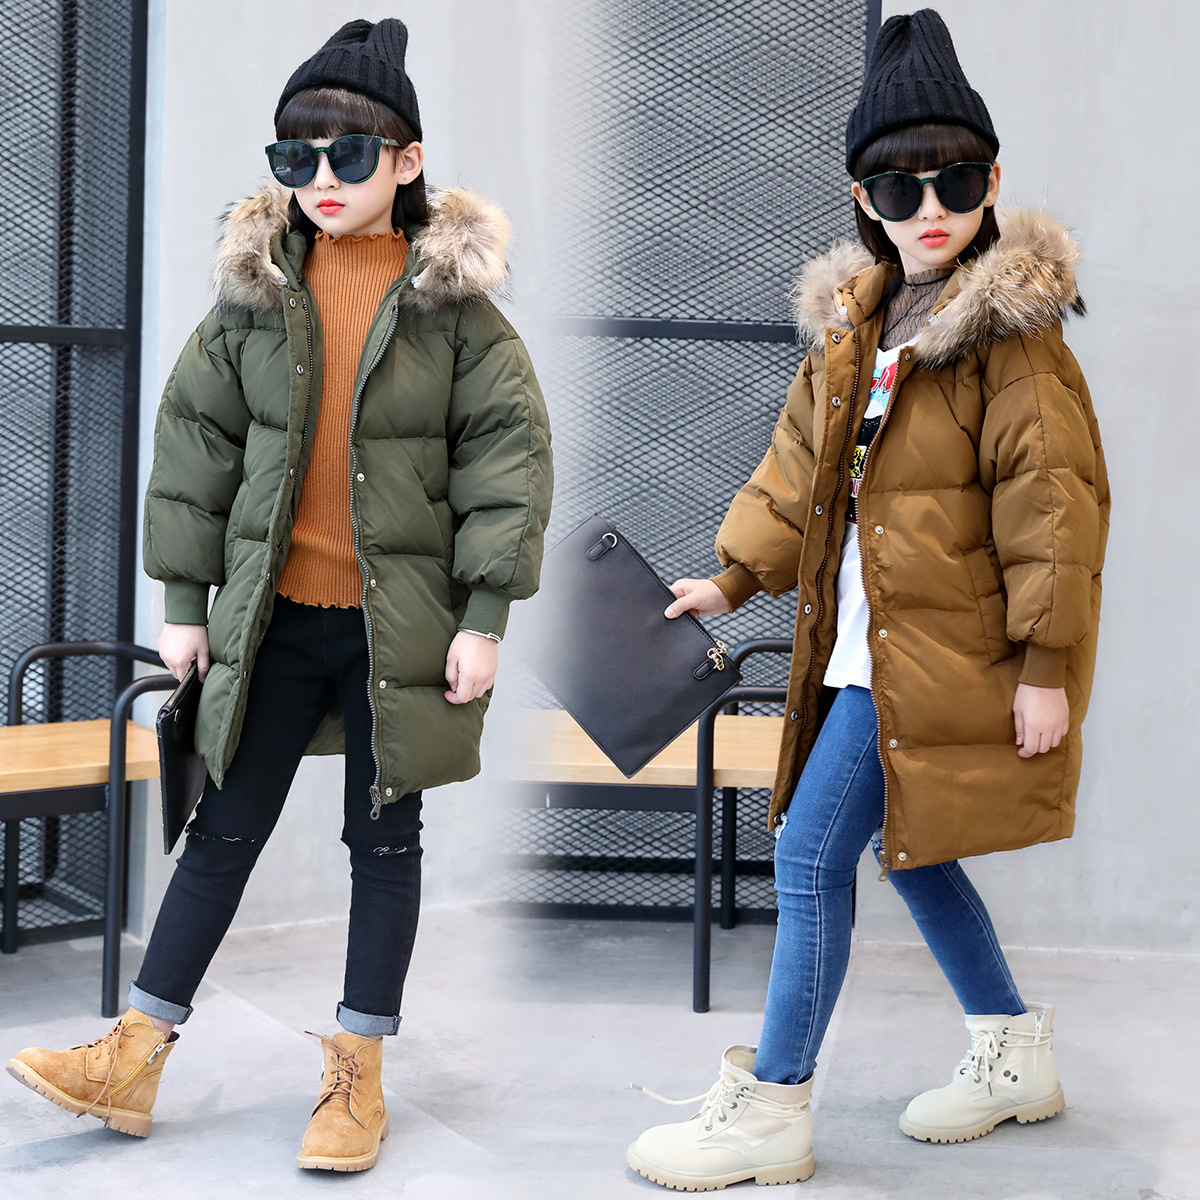 2017 New Fashion Children Jacket Girls Boys Very Warm Thick Duc Down  Clothing   Children Outerwear Winter Jackets Coats new 2017 winter baby thickening collar warm jacket children s down jacket boys and girls short thick jacket for cold 30 degree